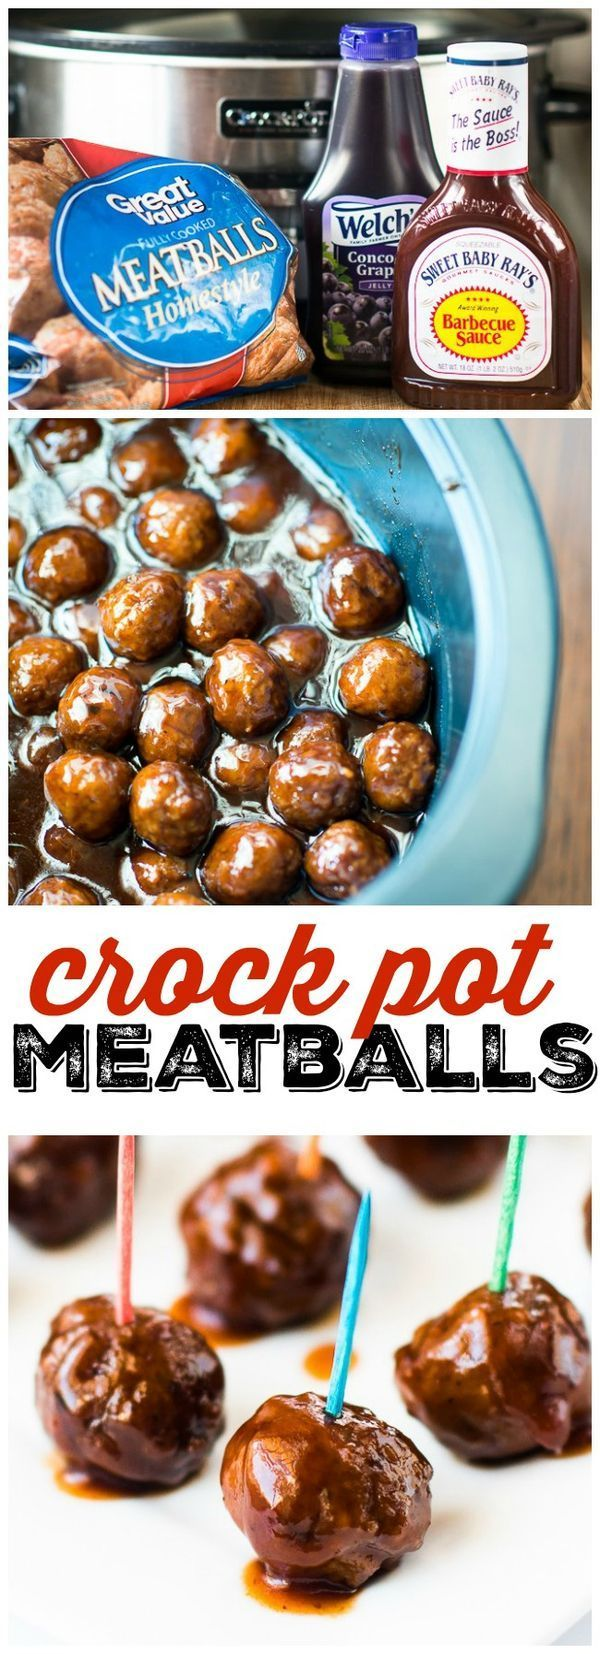 Throw some meatballs in the crock pot and get ready to watch the game!